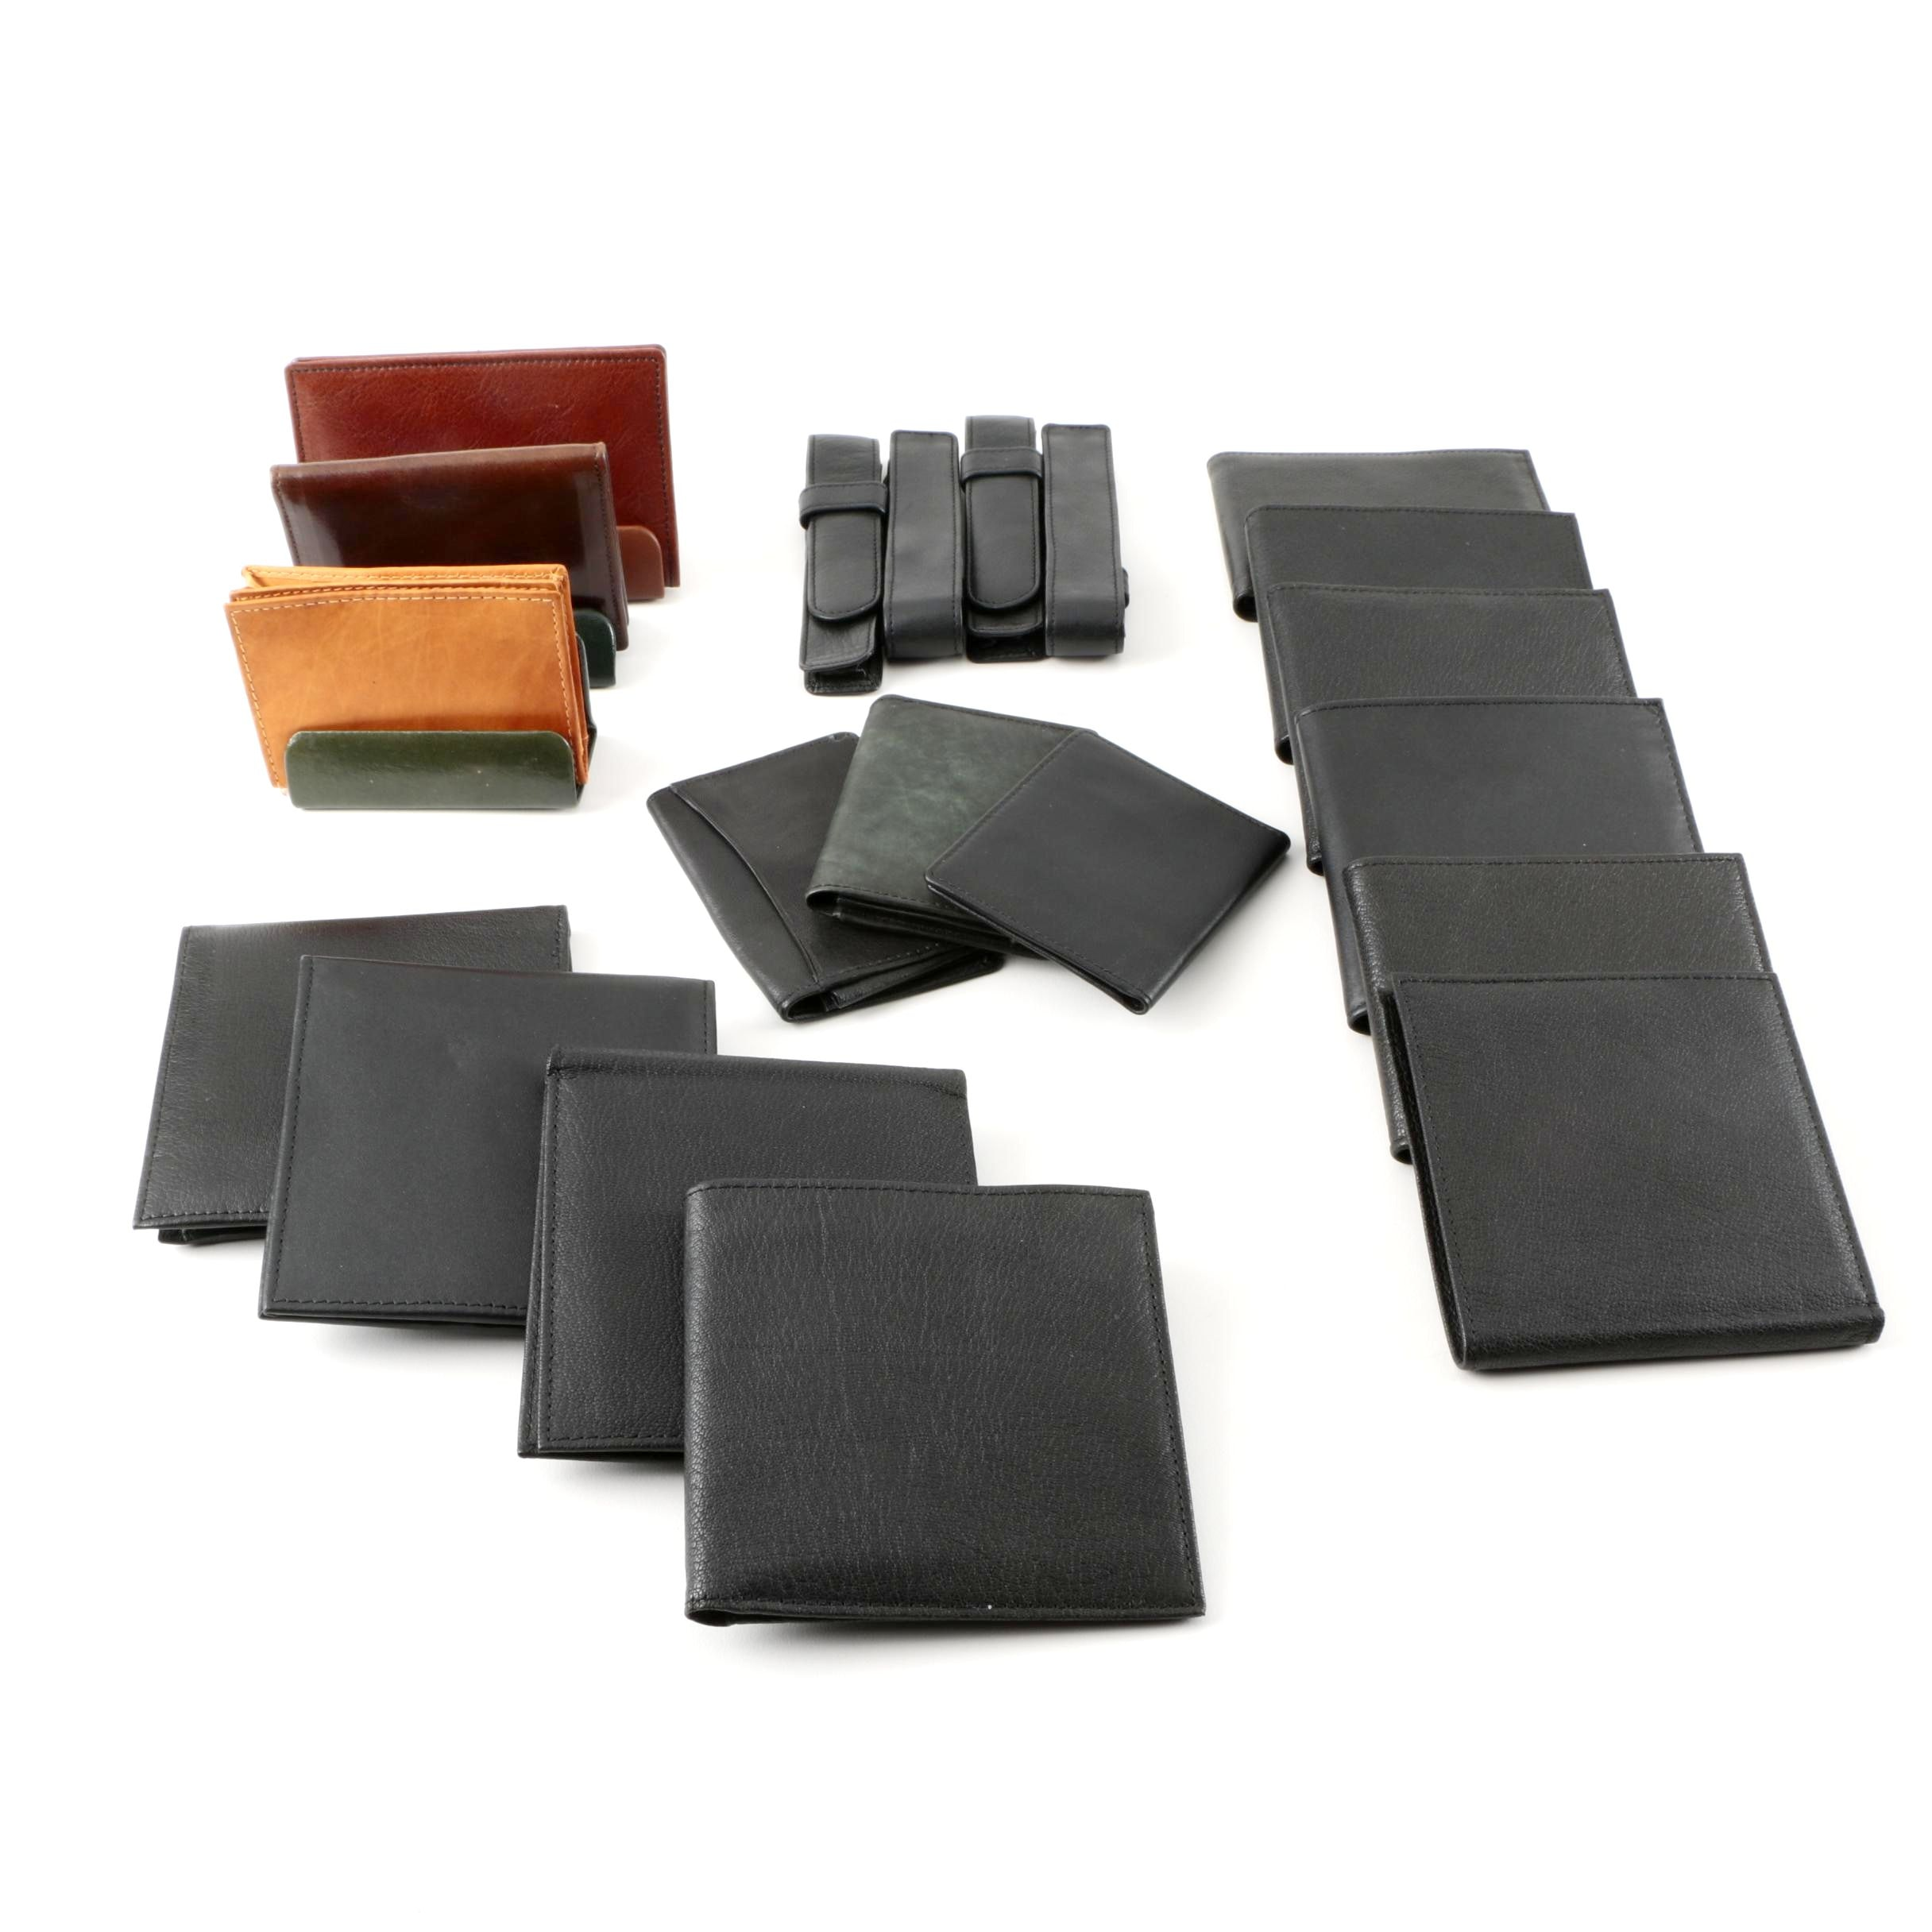 Assortment of Leather Wallets, Card Cases and Accessories